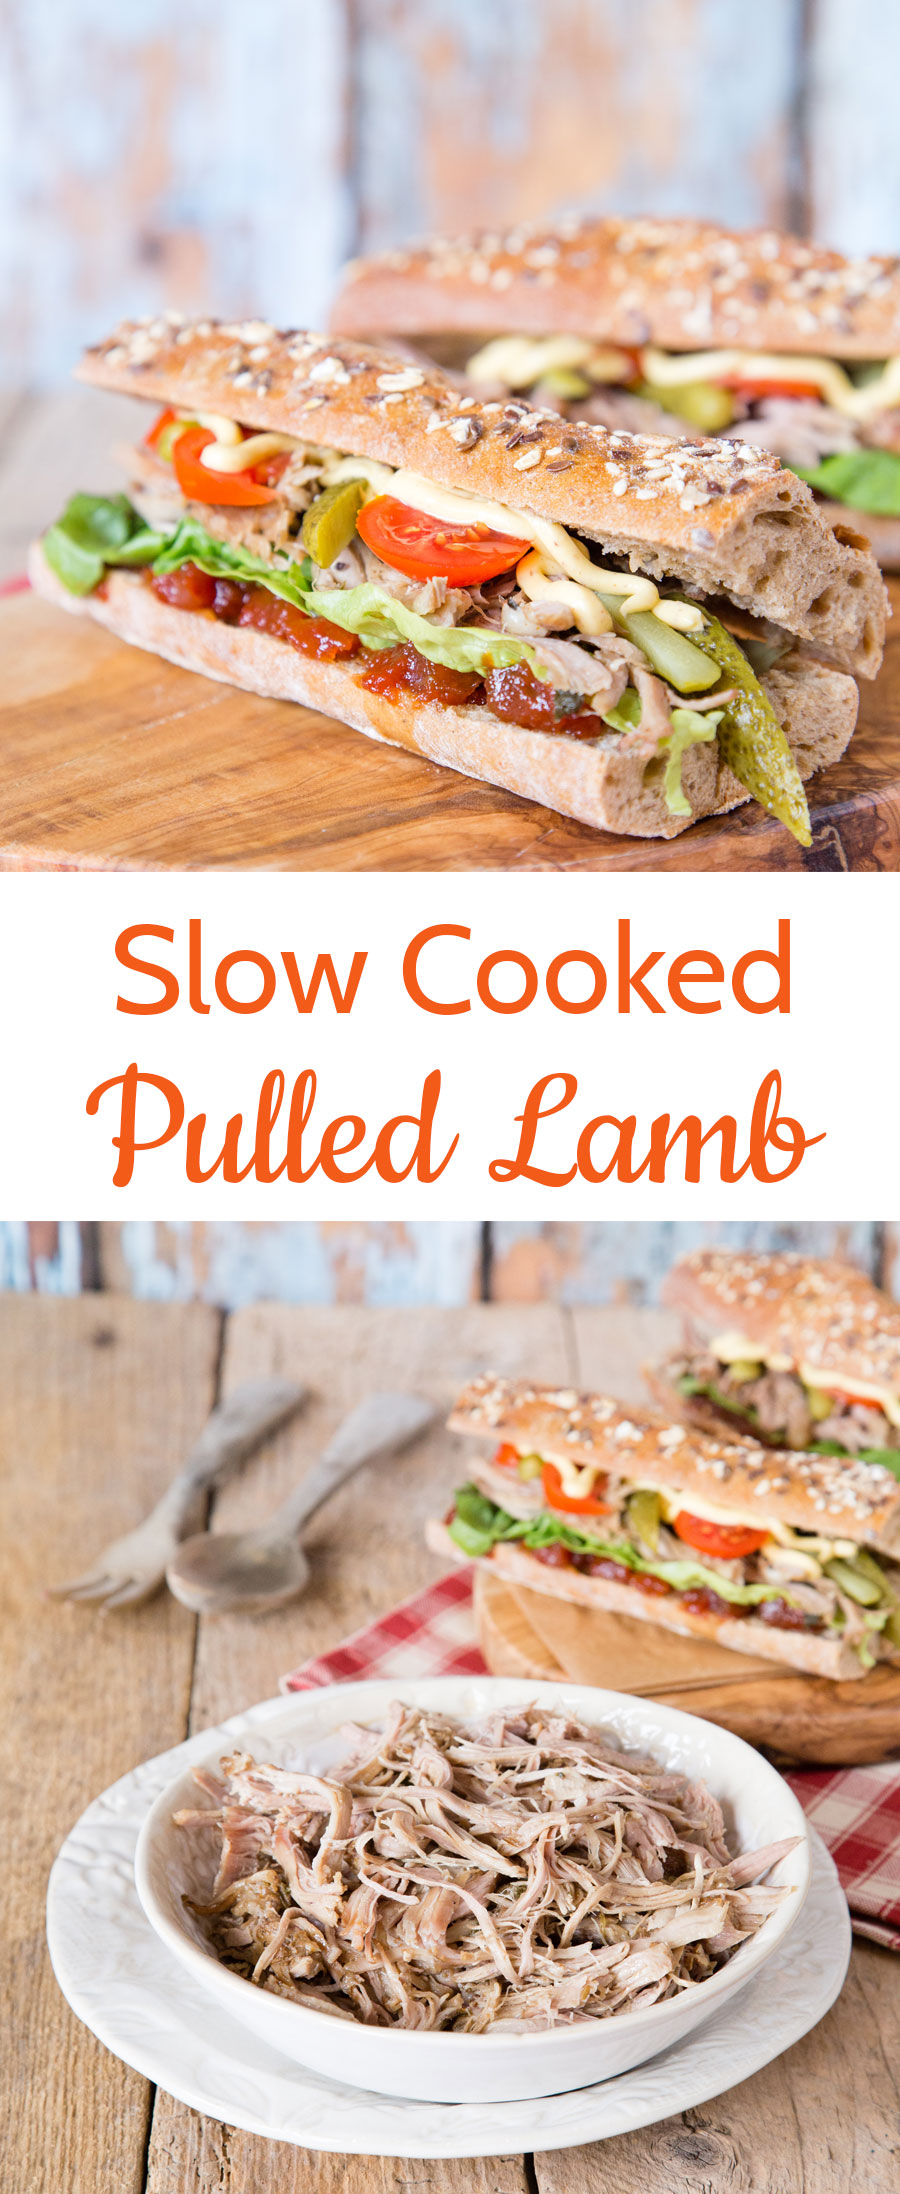 Slowly cooked tender pulled lamb is so easy to make, and ideal for feeding a crowd at your next party or BBQ.